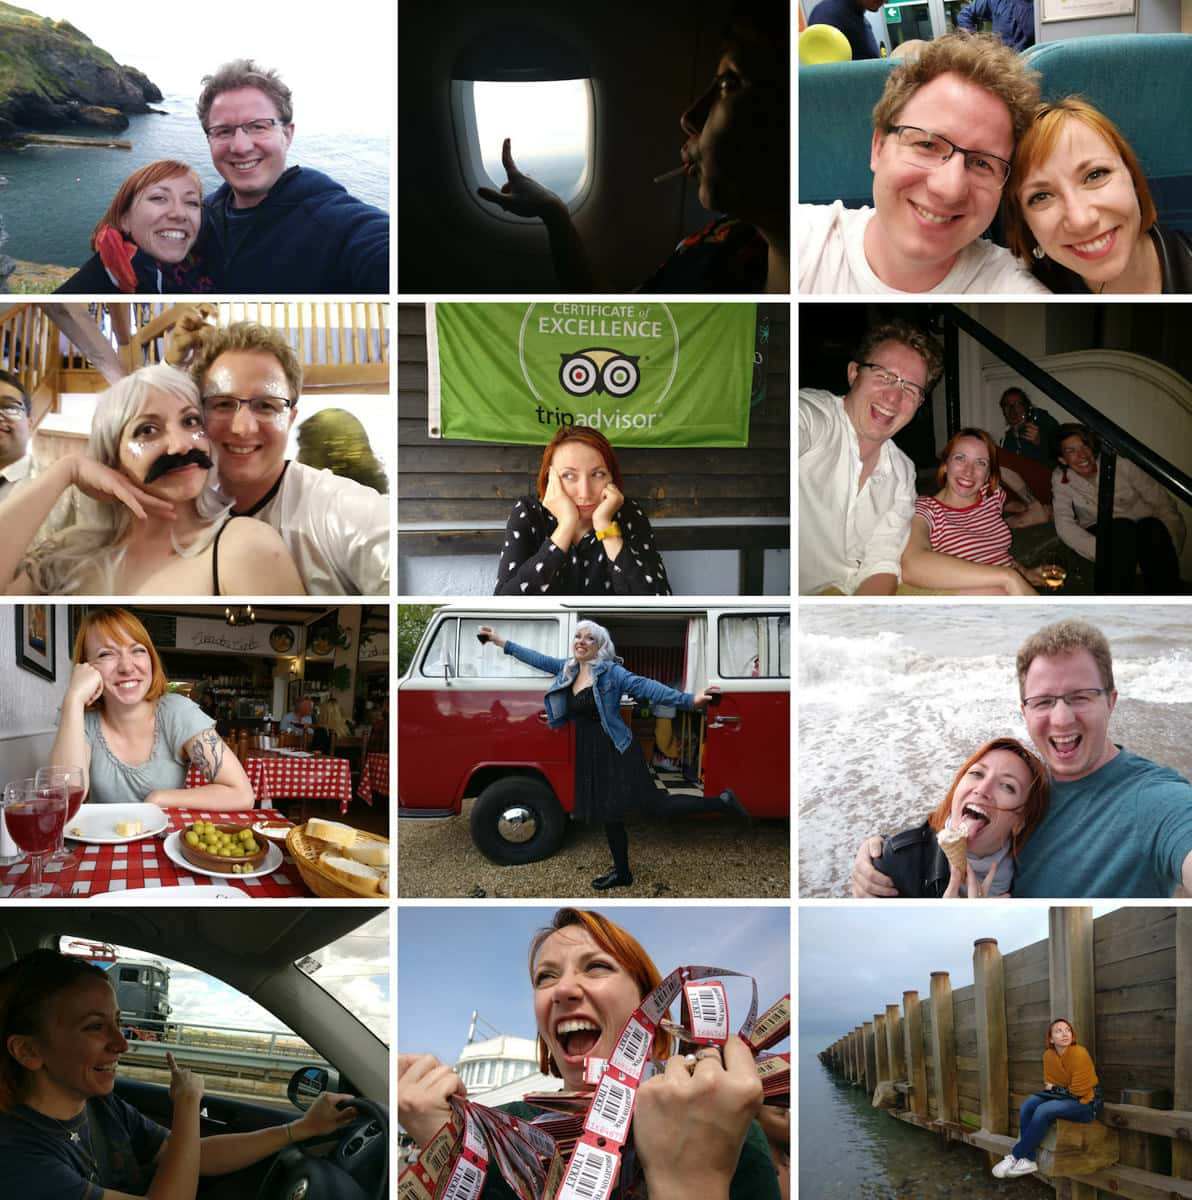 a second collage of photos of Matt and Corina's adventures around London